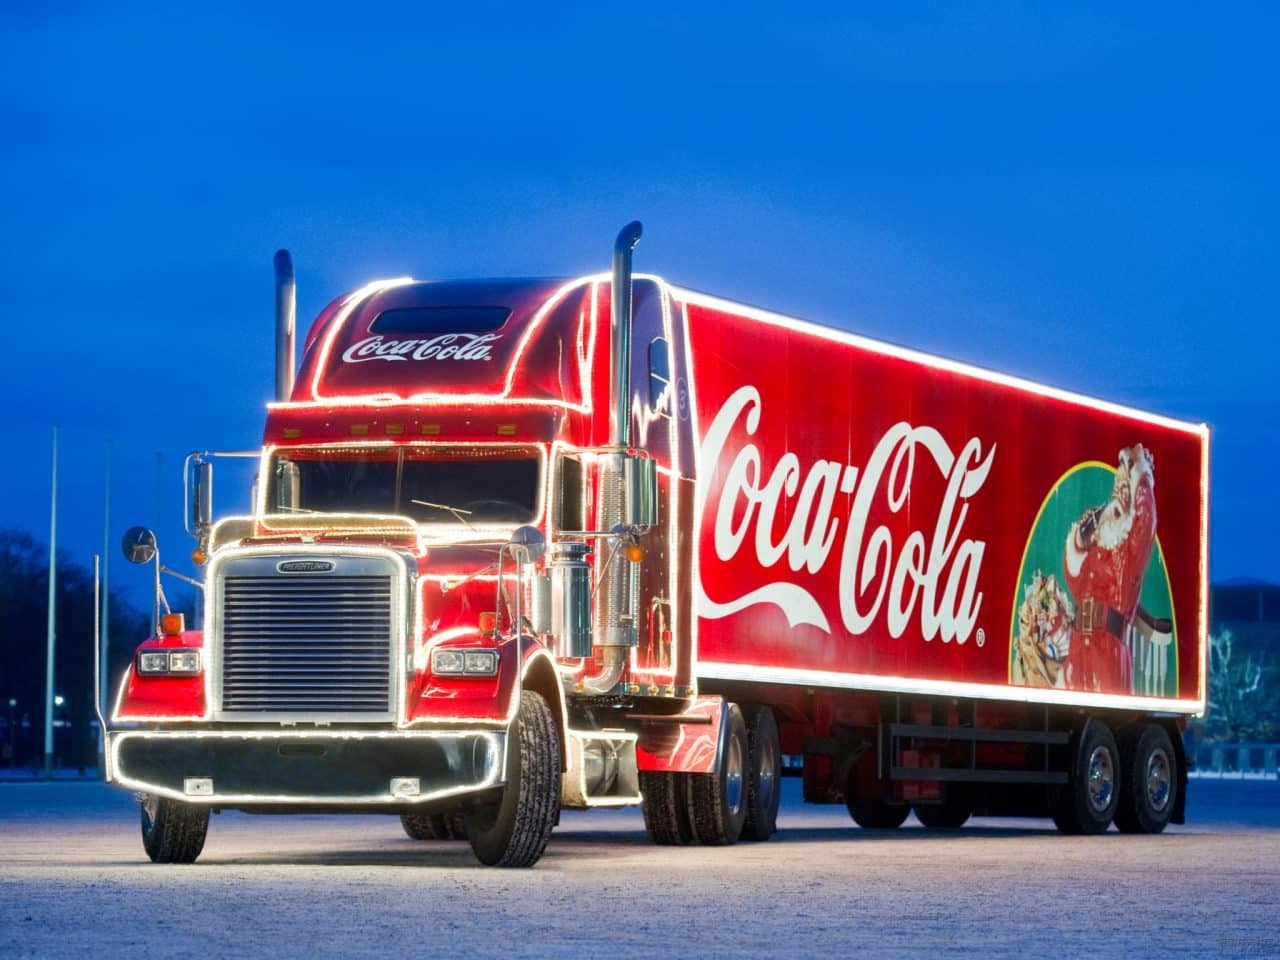 Officials prepare £25M BID to bring Coca-Cola Christmas Truck to Southend in 2016.